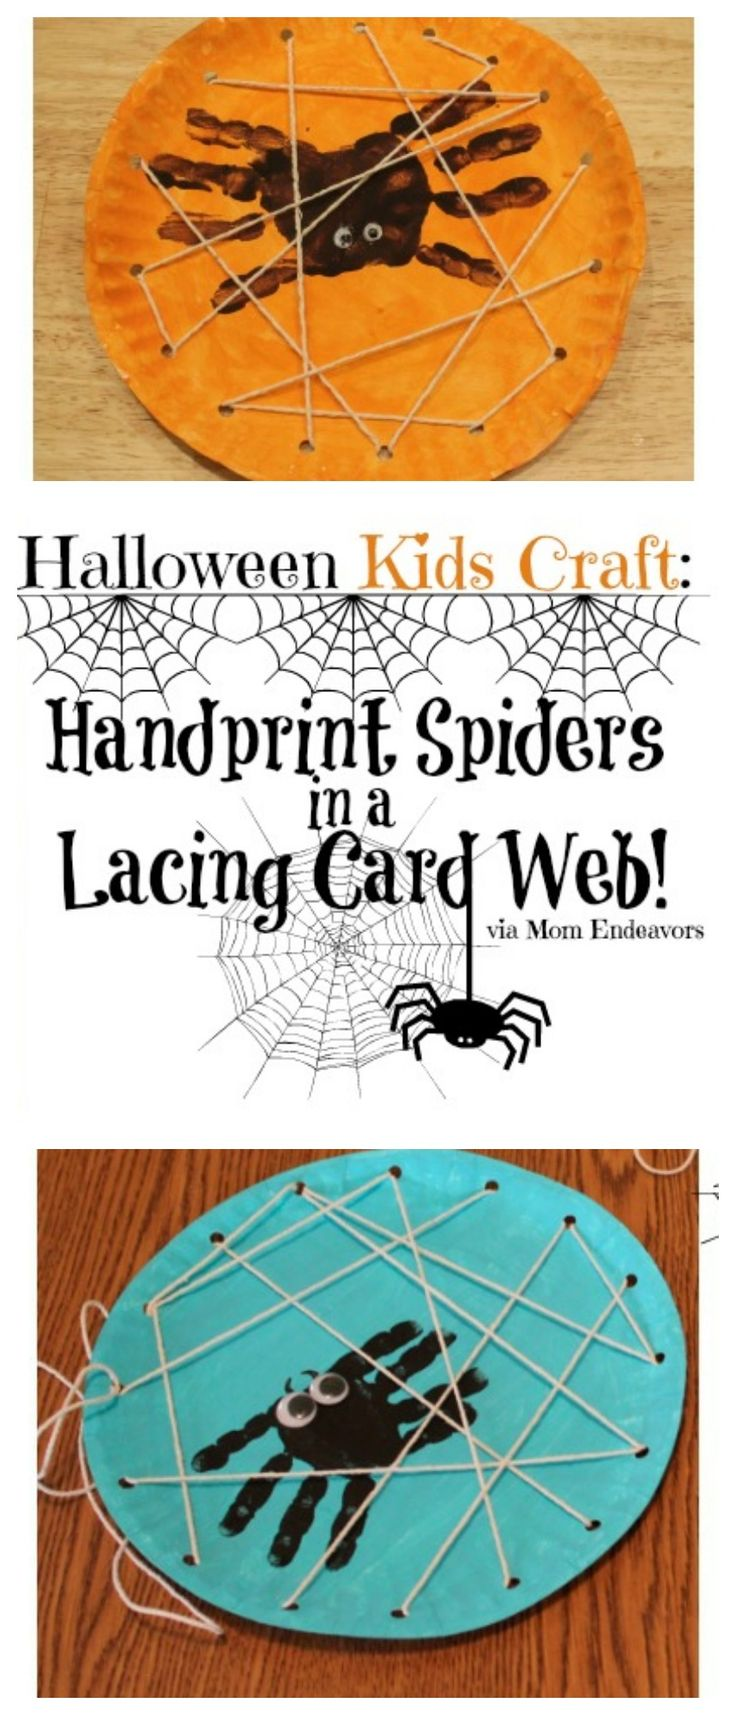 Cute spider craft!